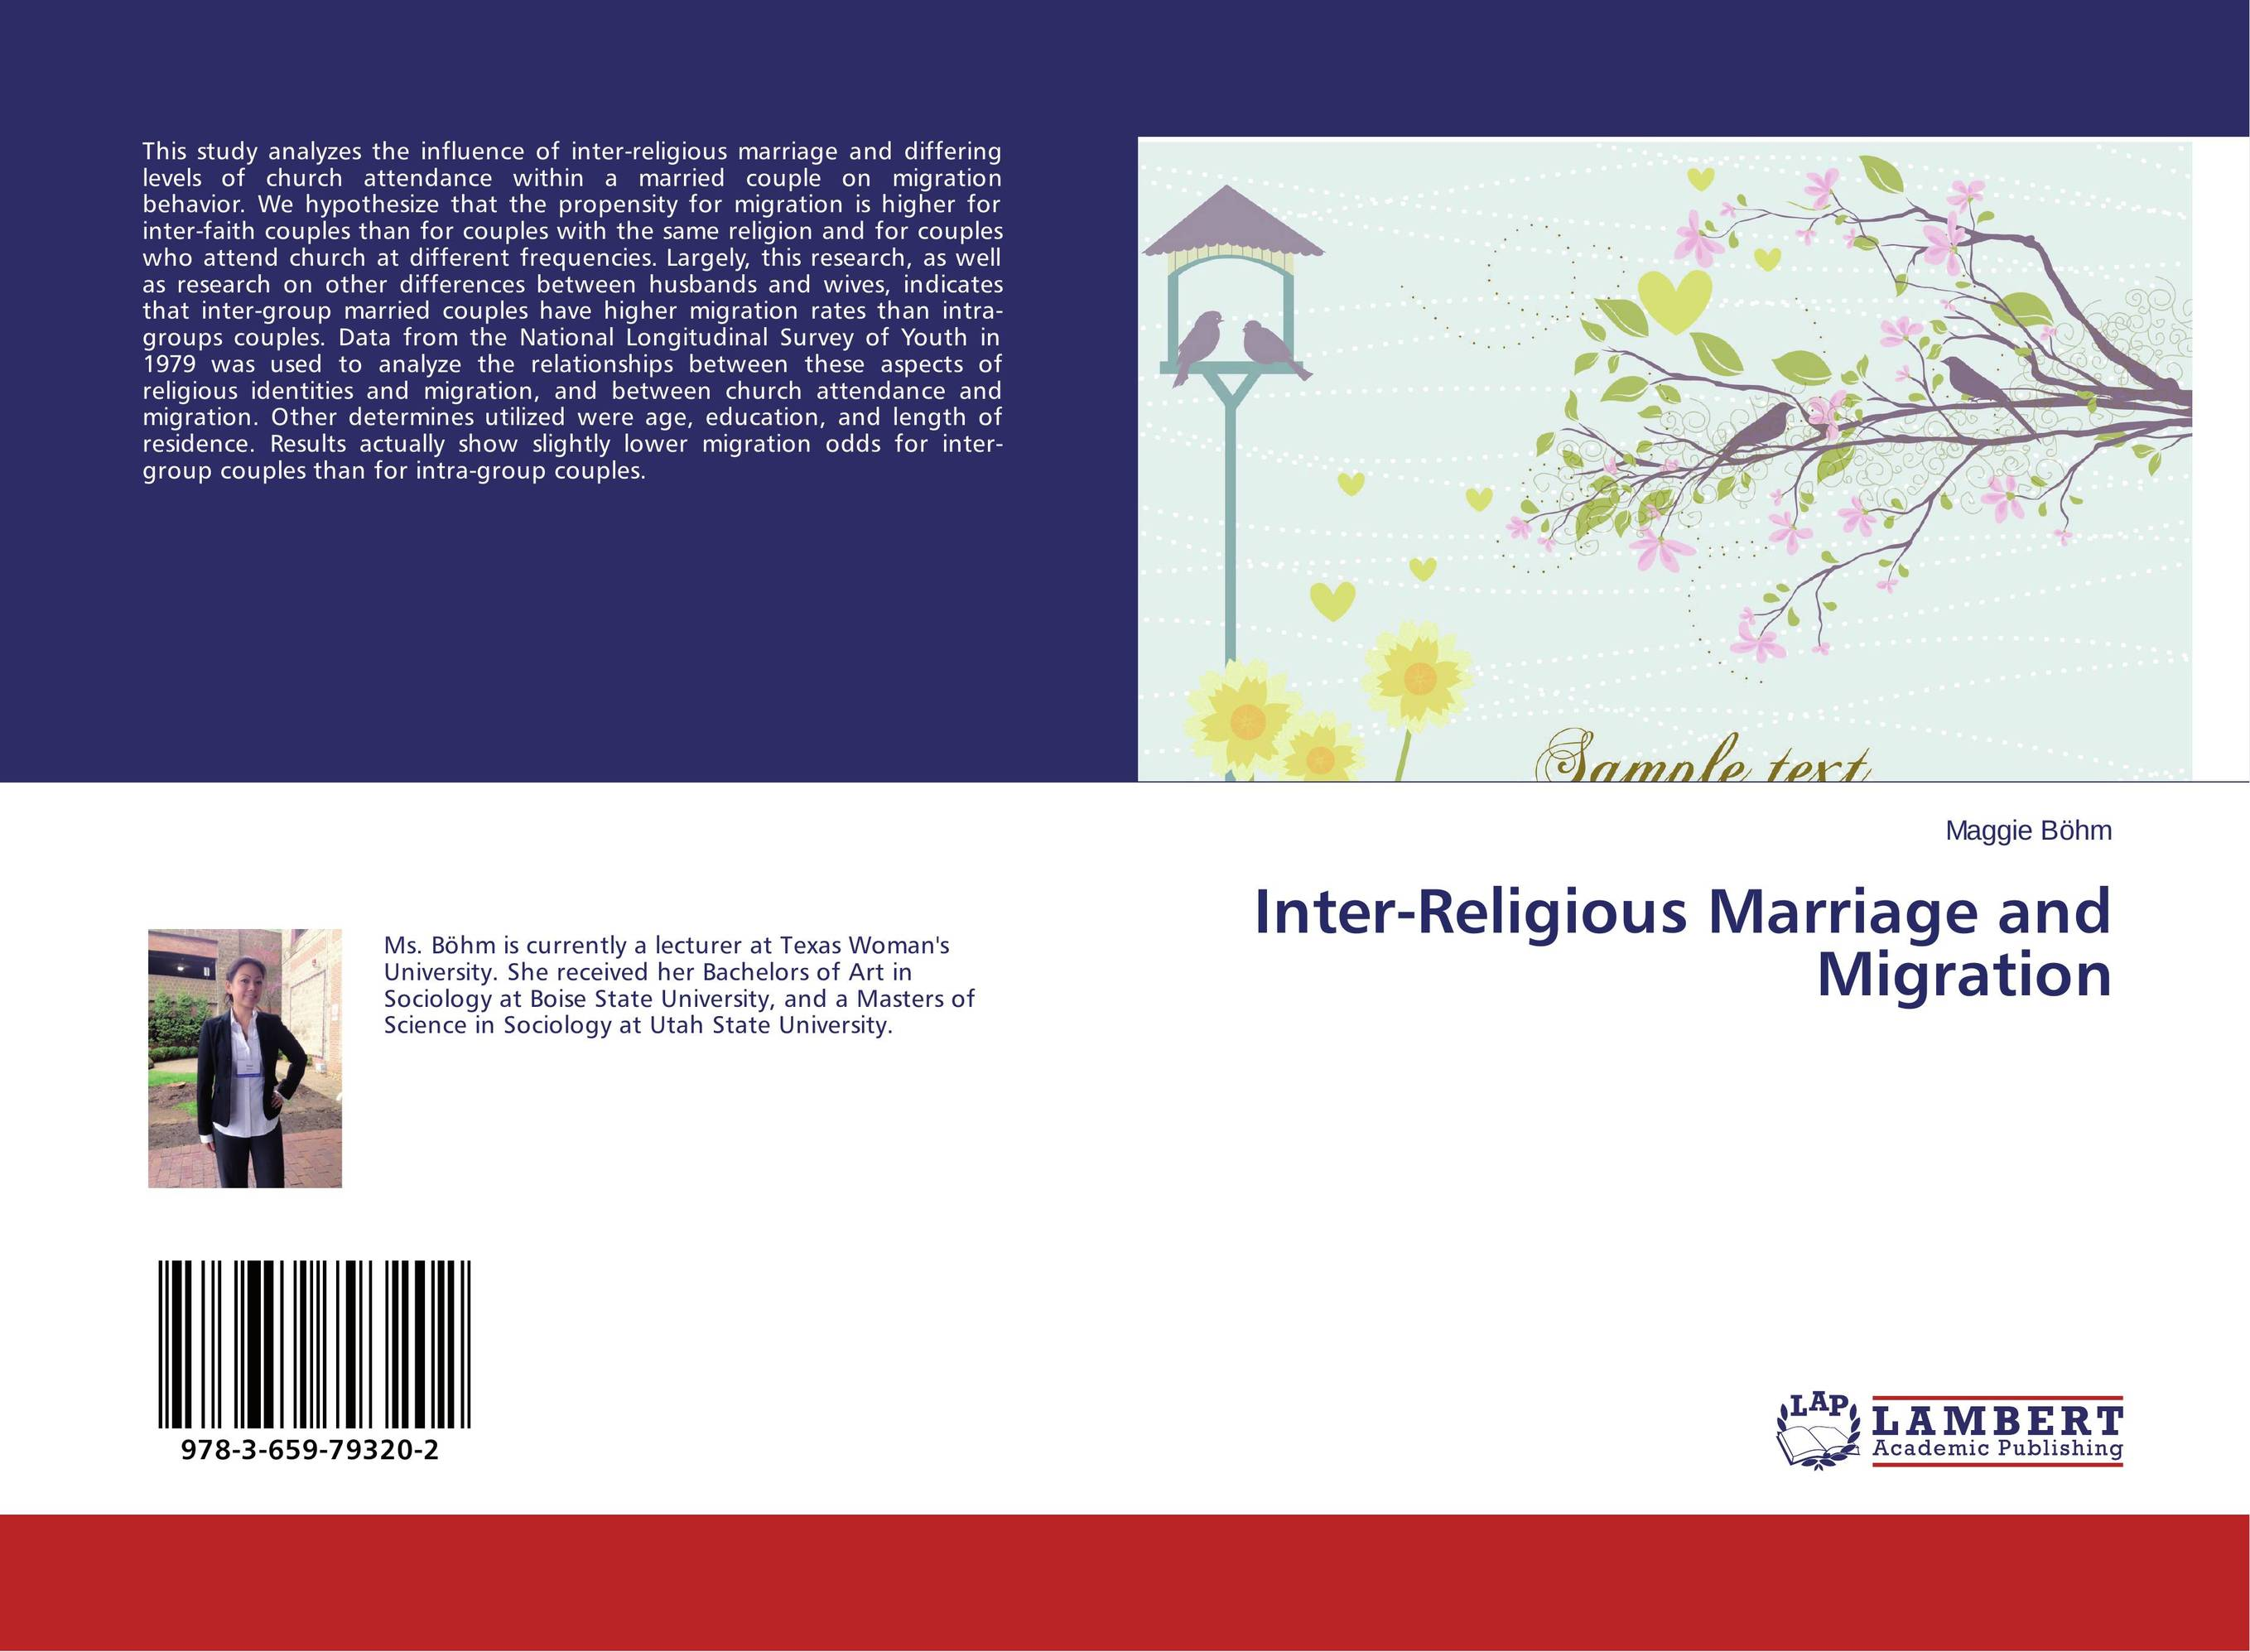 Inter-Religious Marriage and Migration intra and inter frames based on video compression techniques